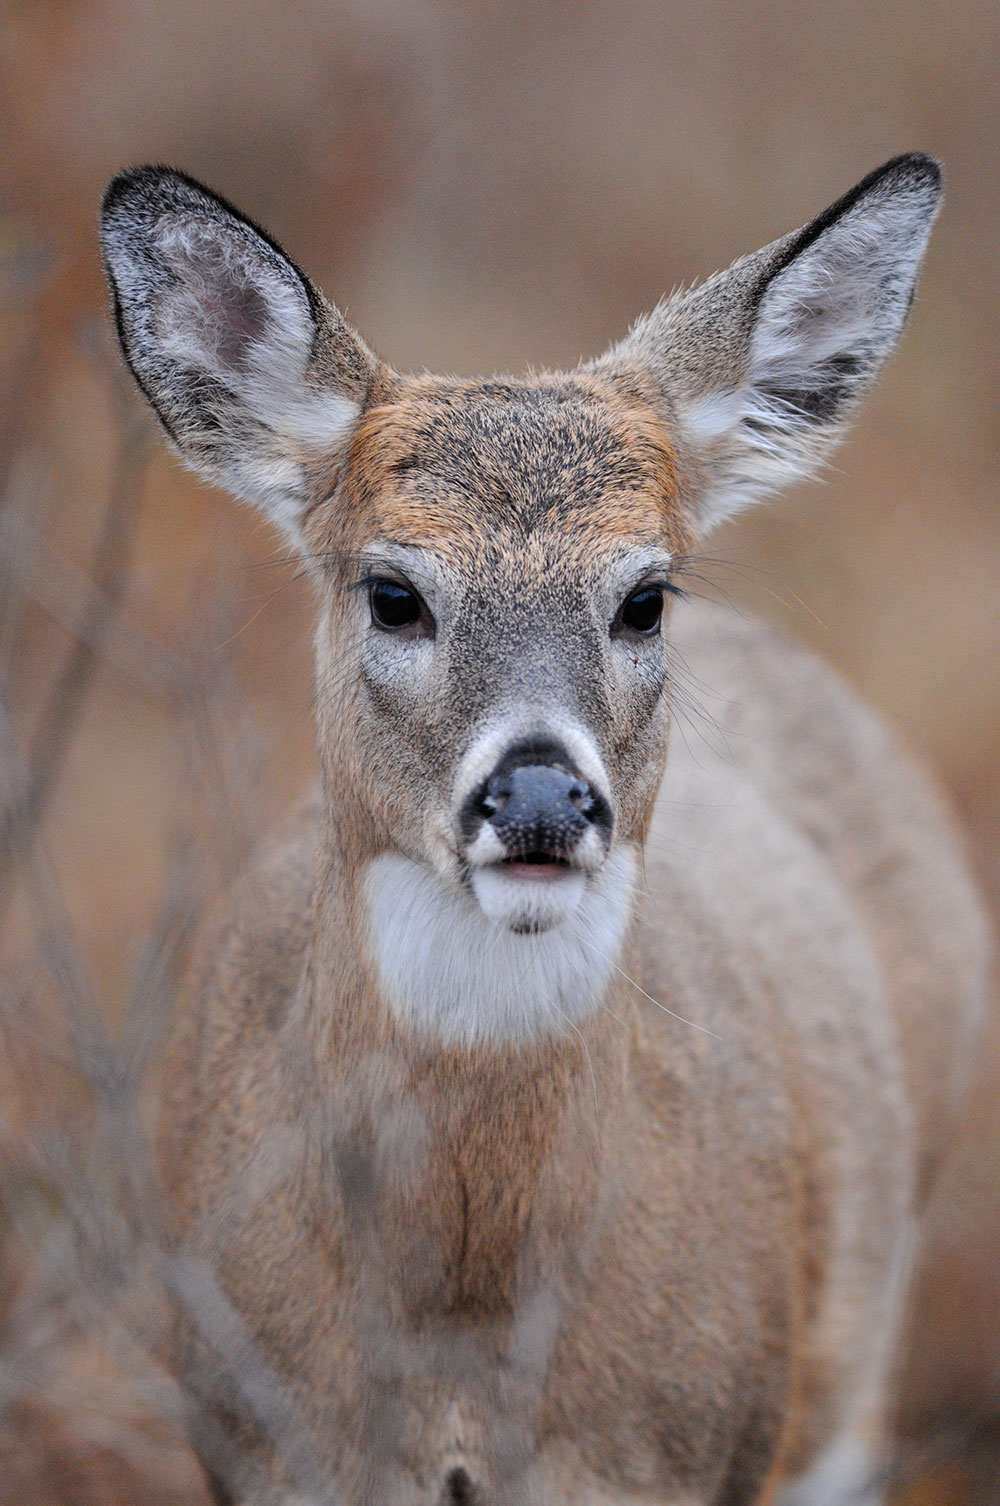 //www.bowhunter.com/files/how-to-understand-whitetail-deer-sounds/002_fawn-bleat.jpg